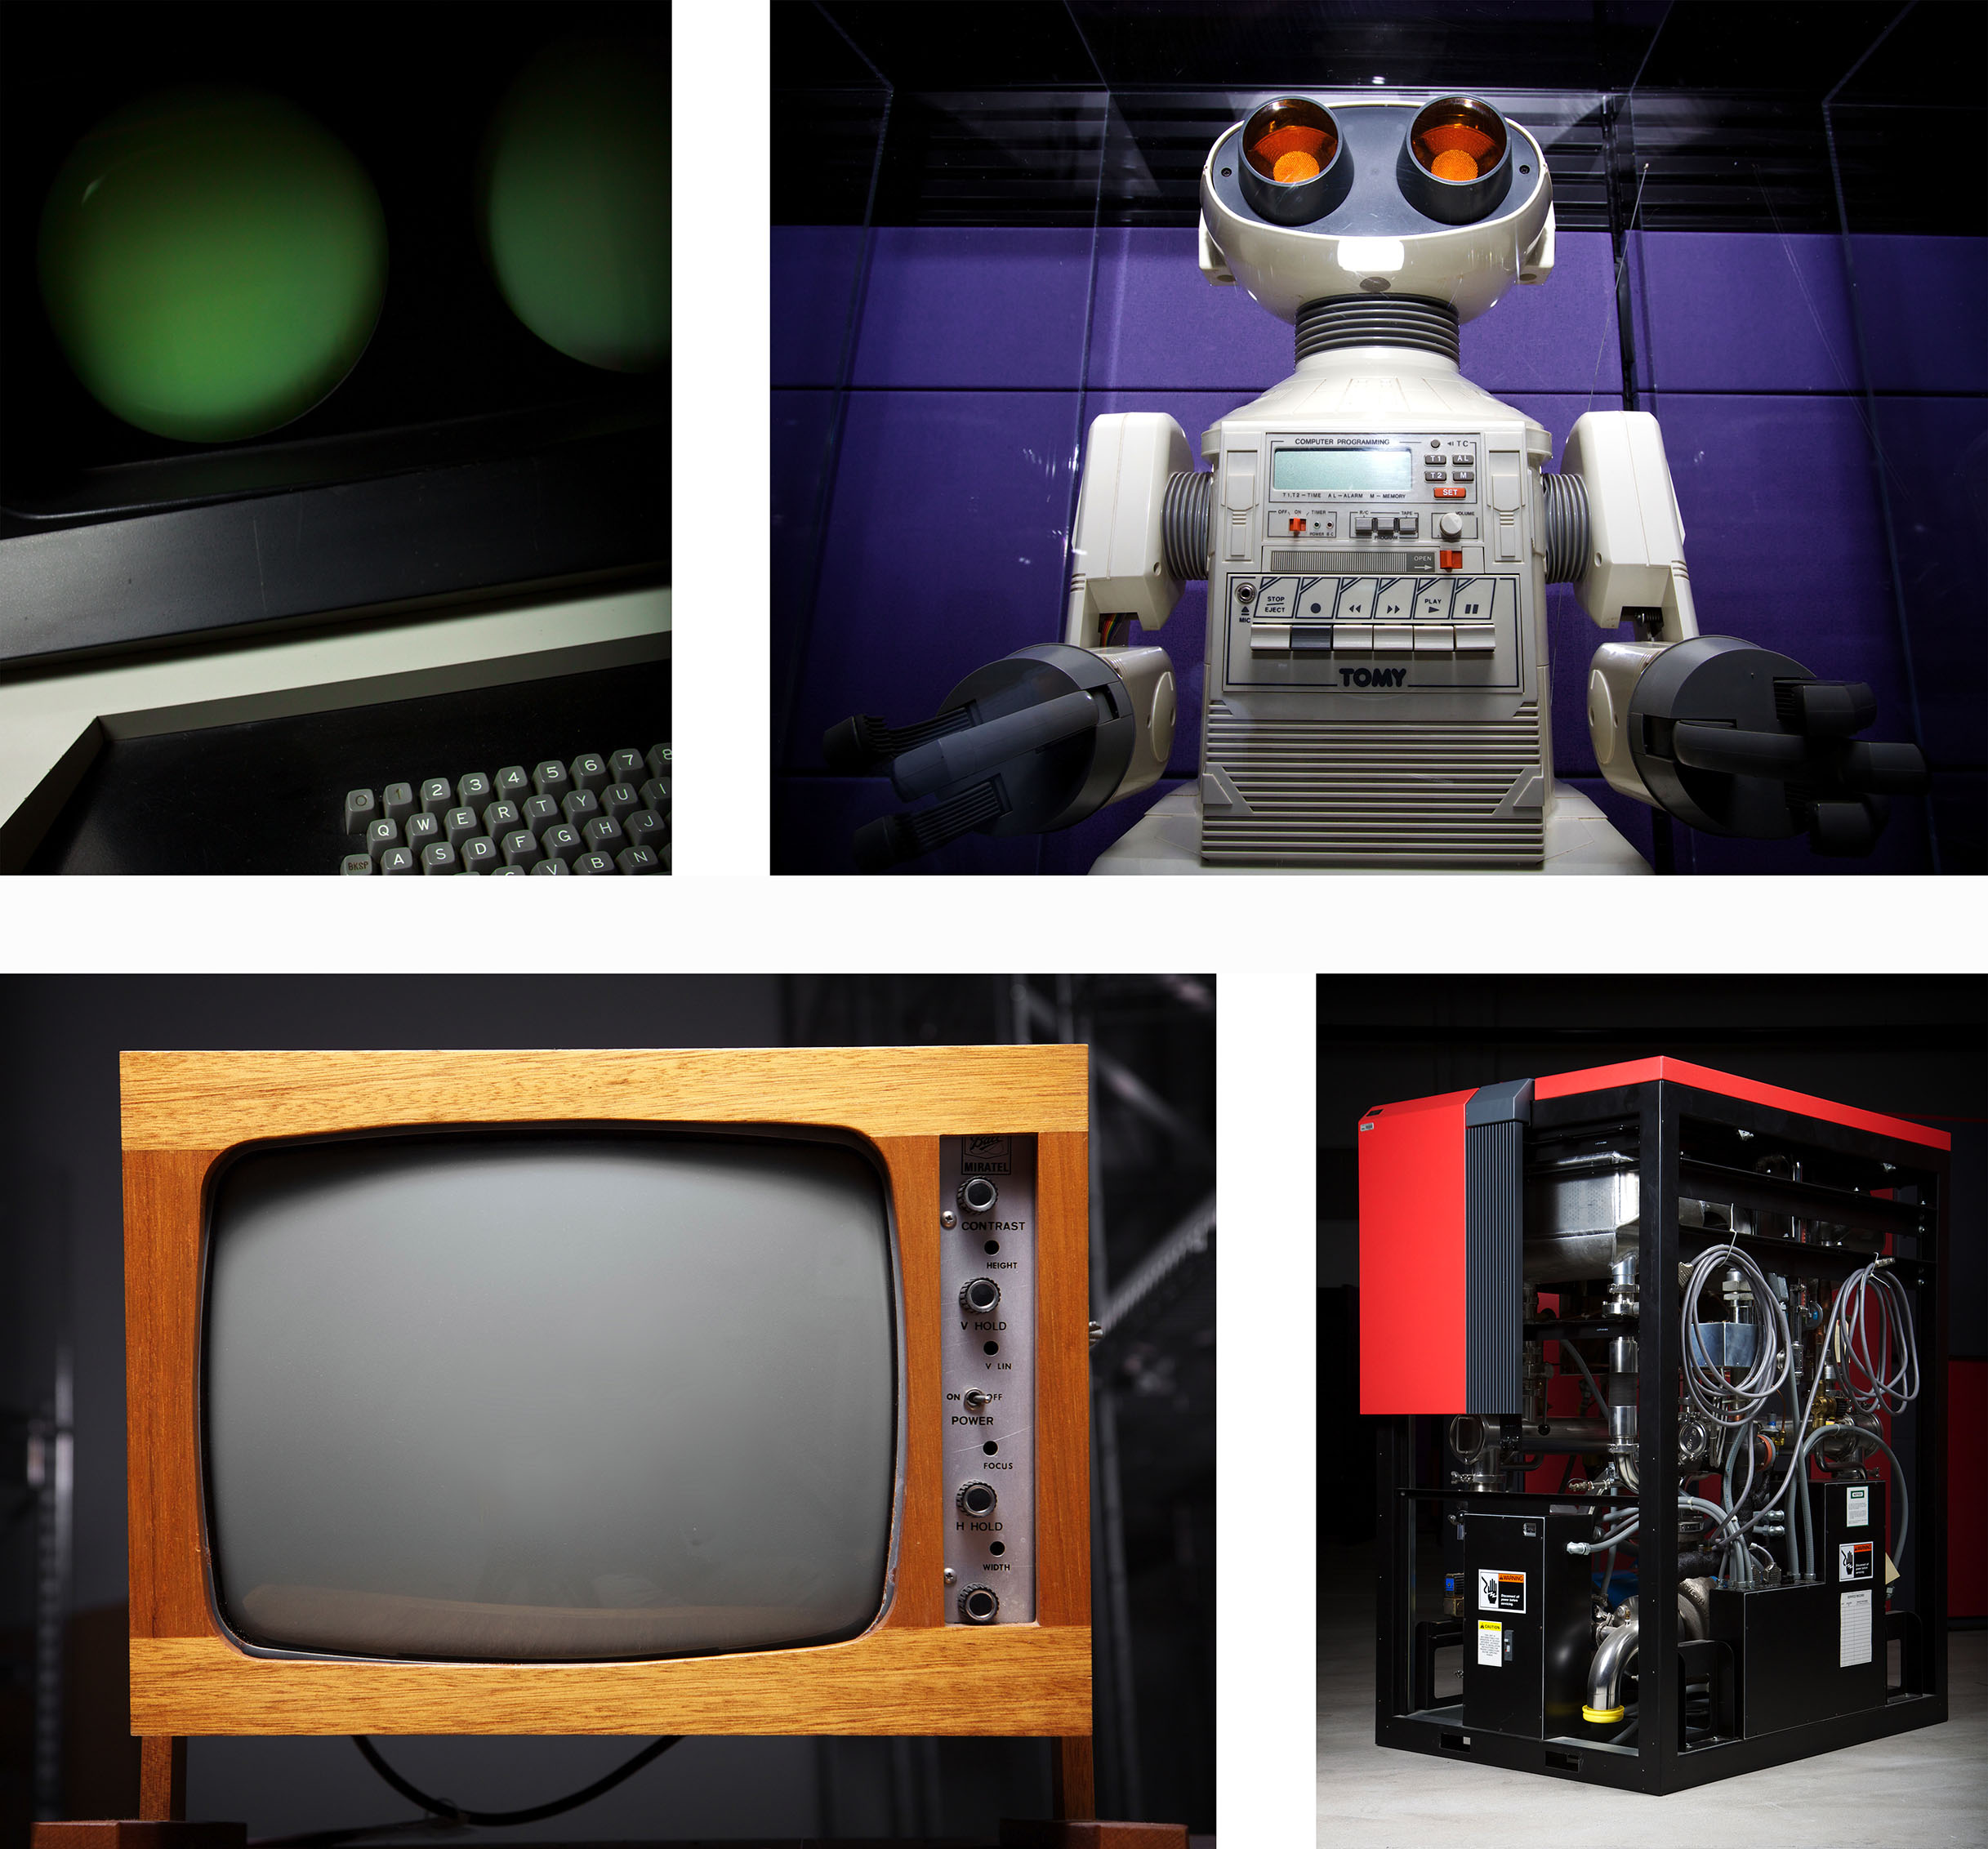 Some photos taken by me in the Computer History Museum after hours